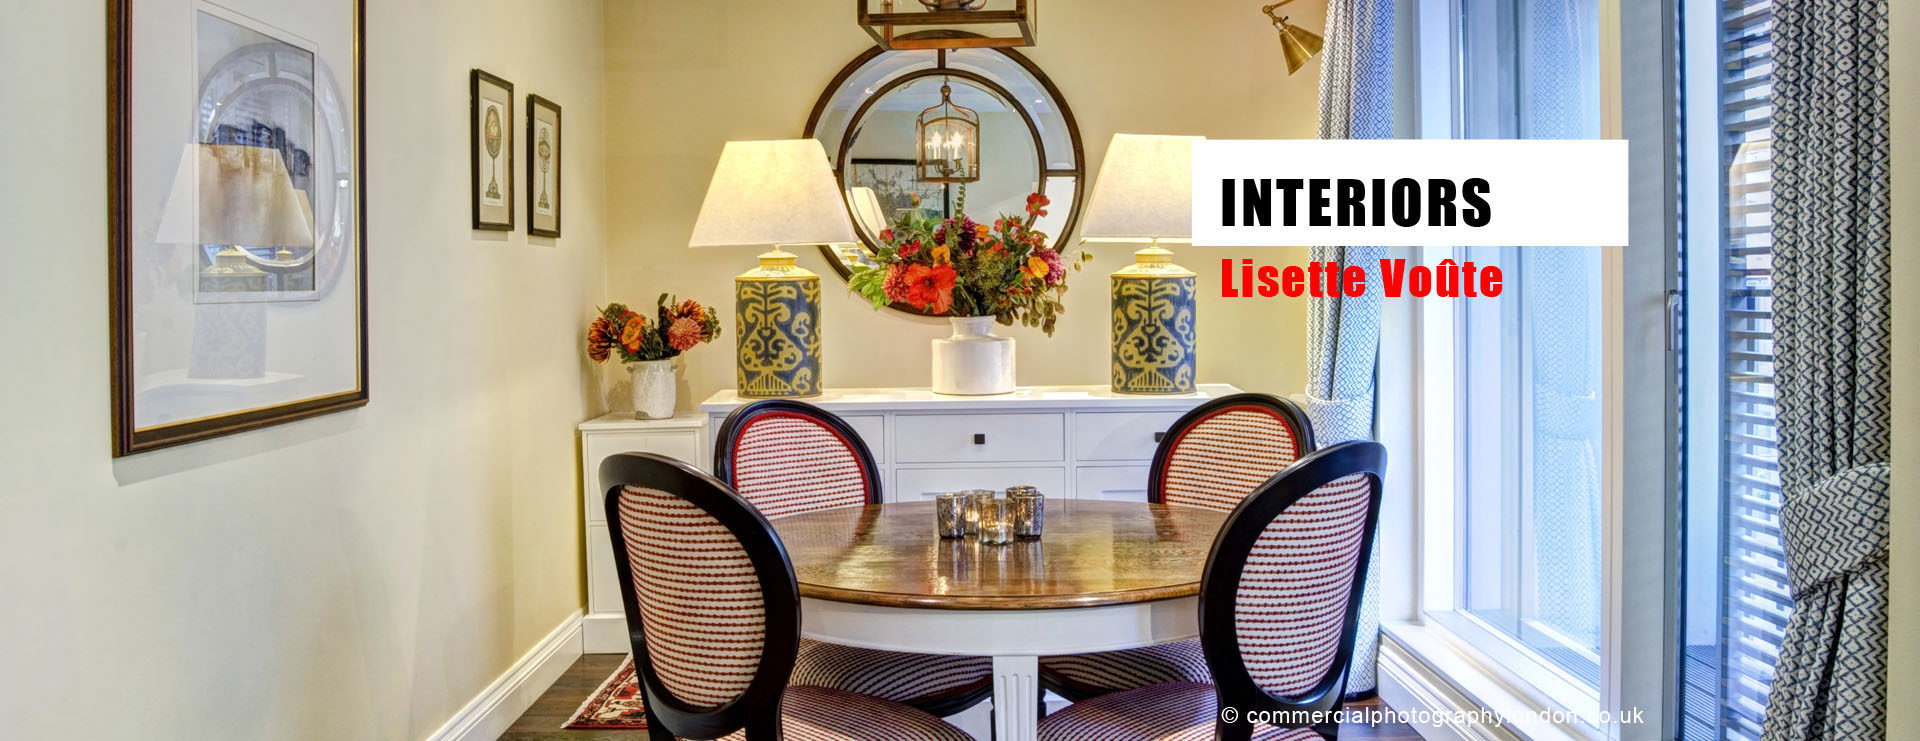 Advertising photographer London interiors photo home page.